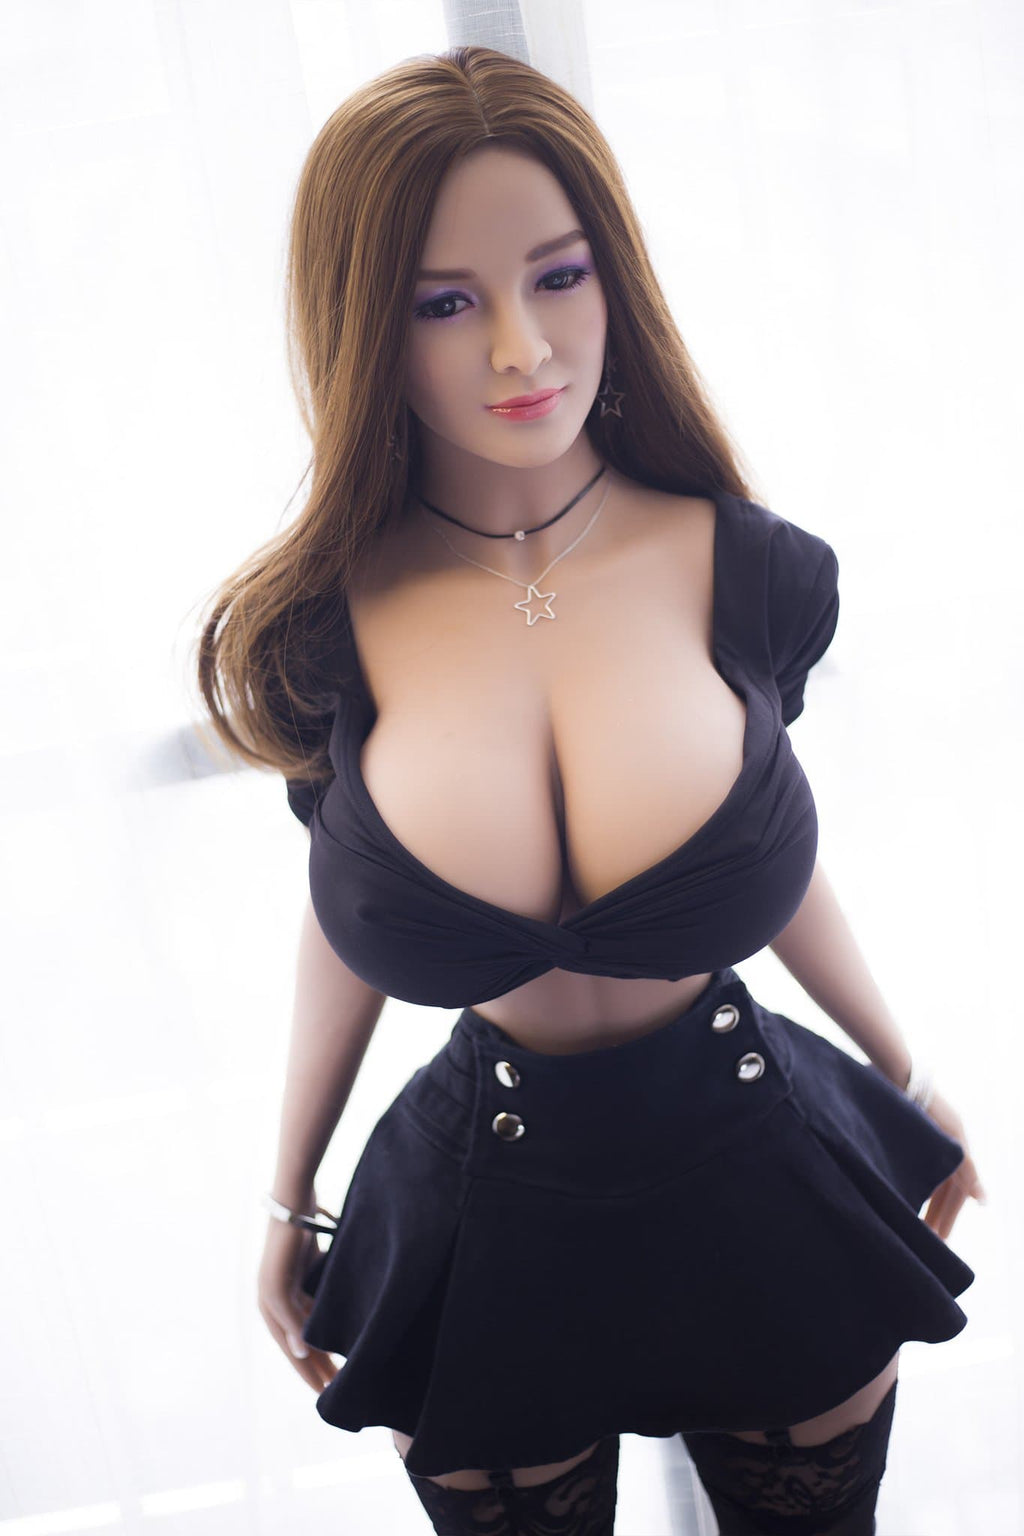 reba 153cm brown hair curvy giant massive tits jy athletic tpe sex doll